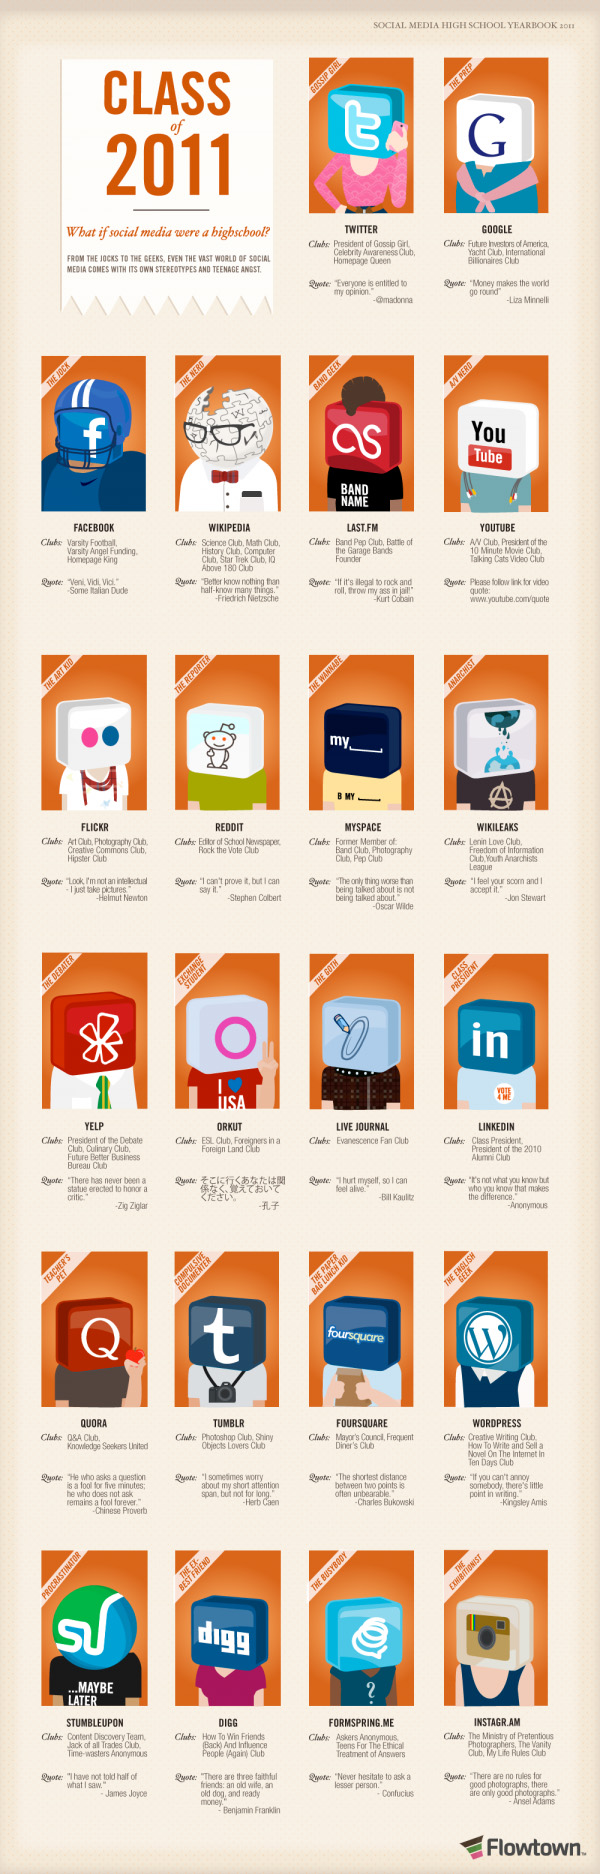 What if Social Networks were highschool students